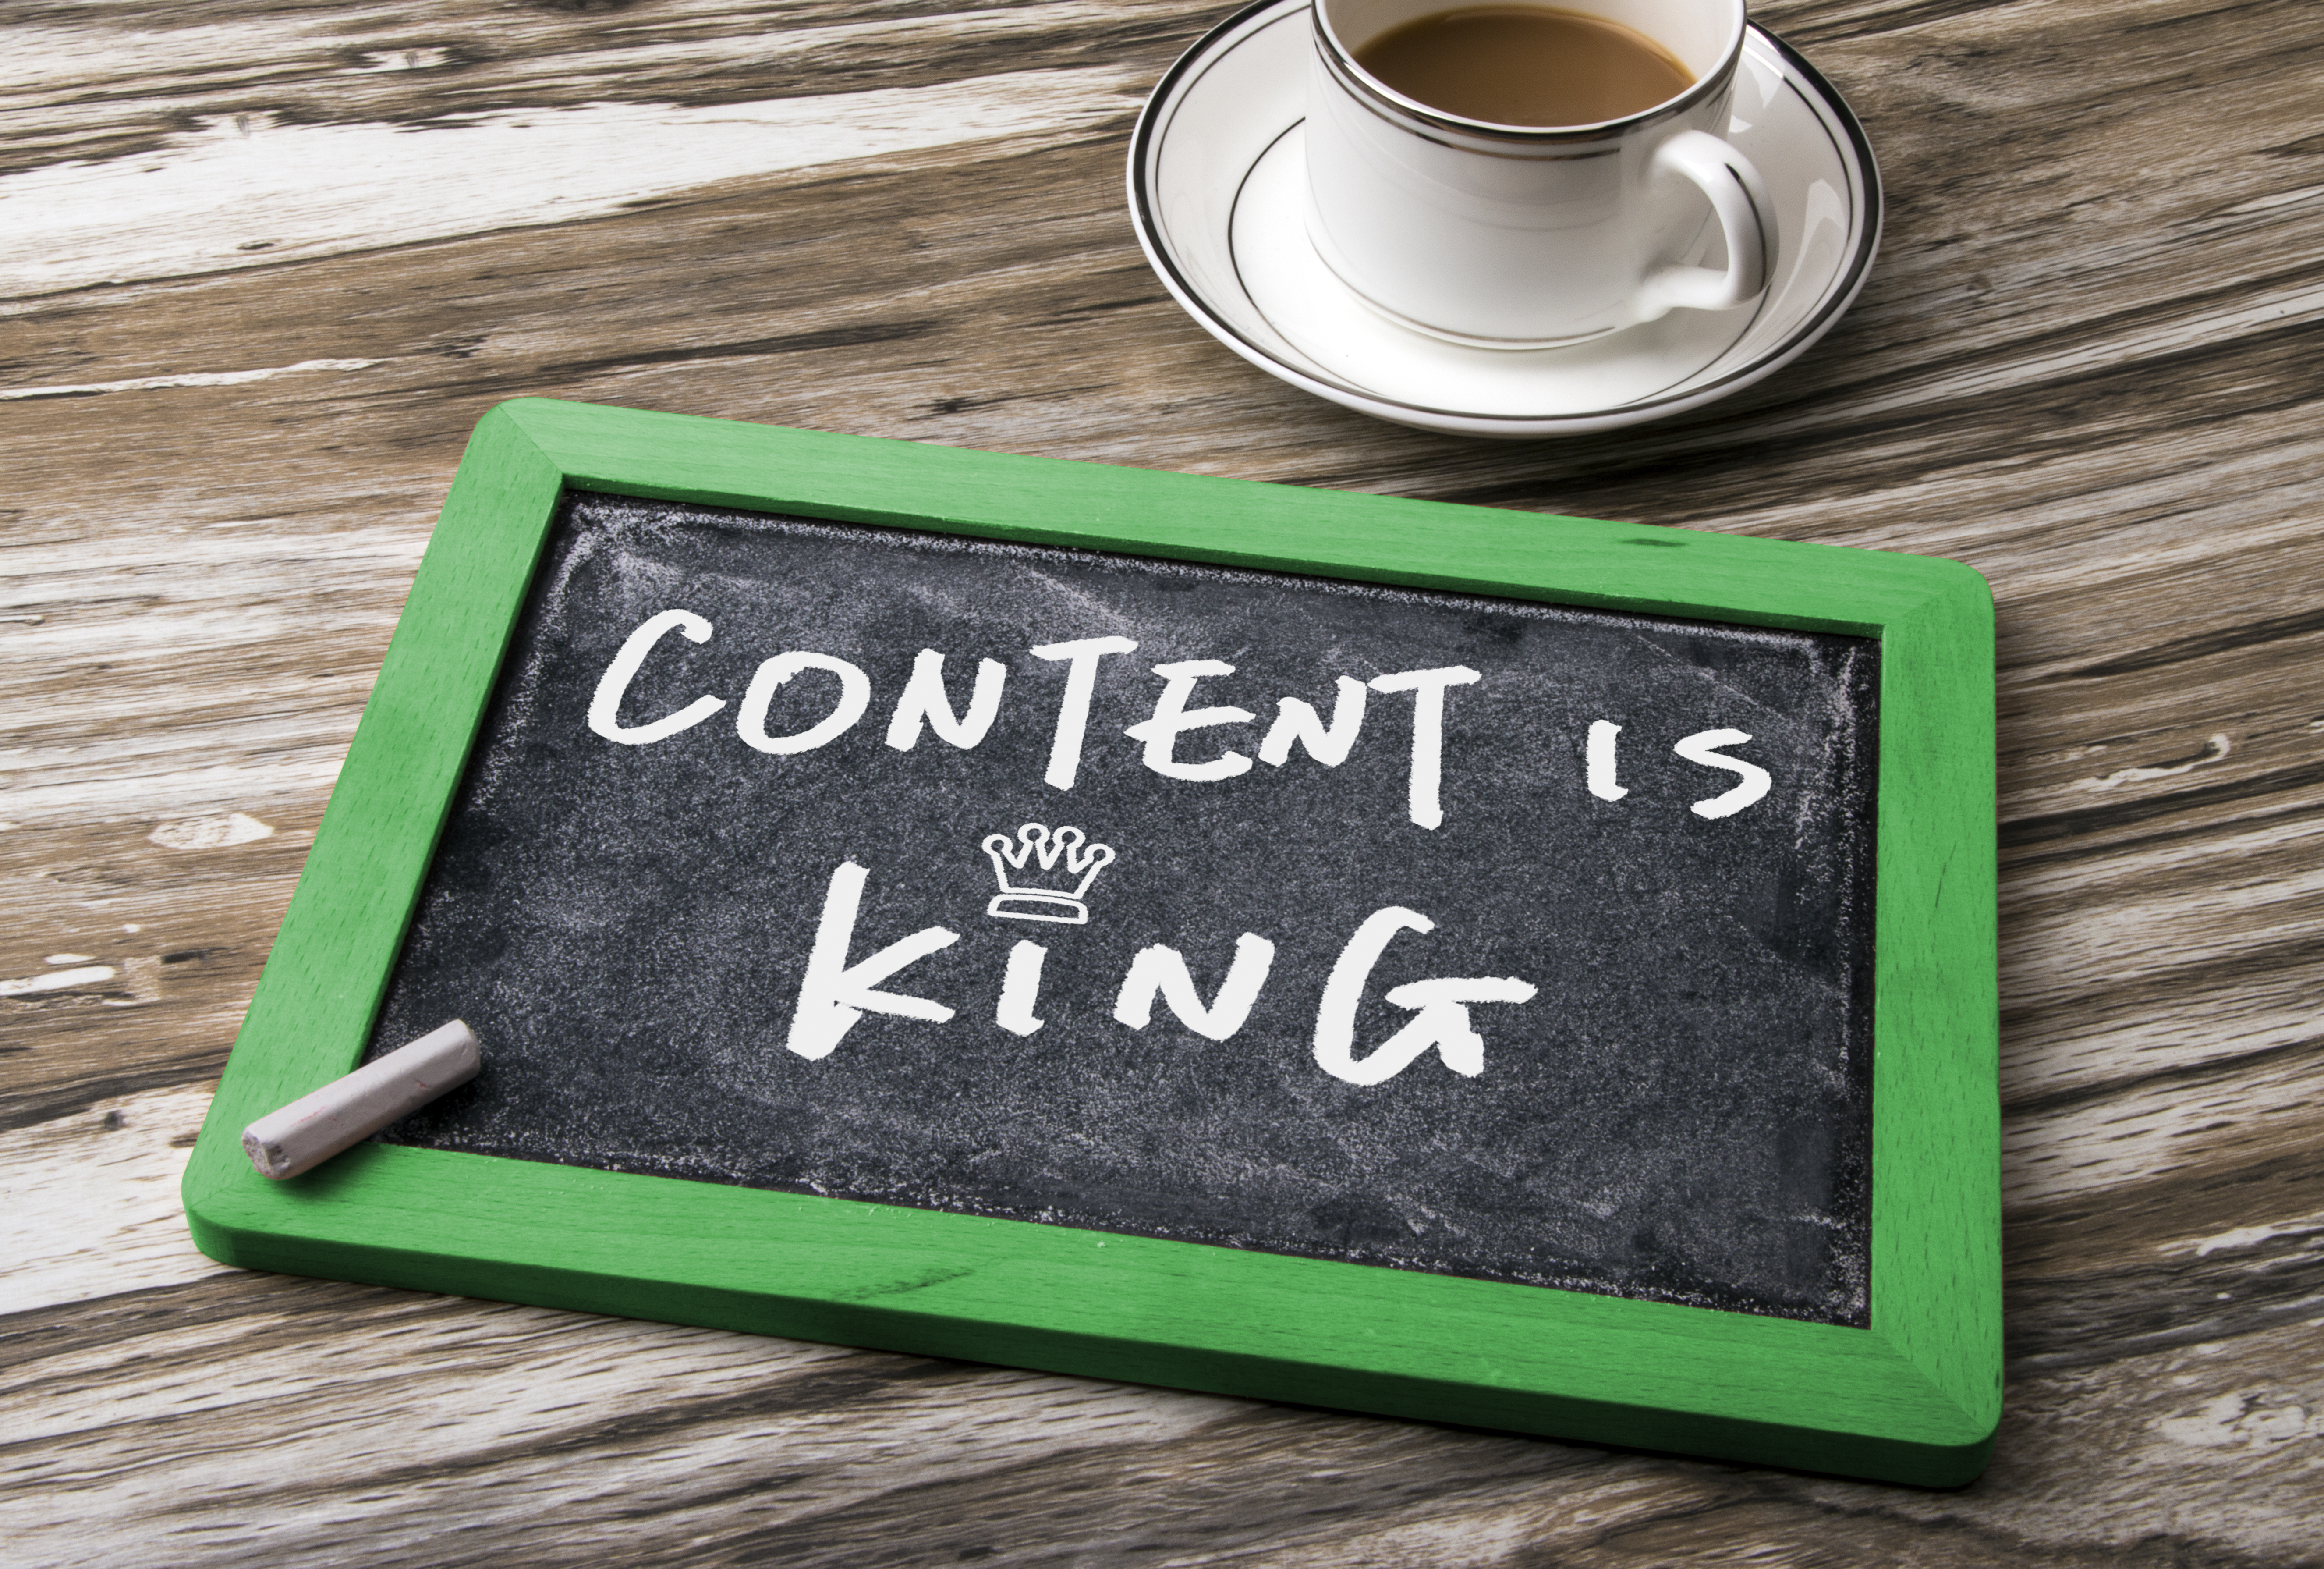 content is king handwritten